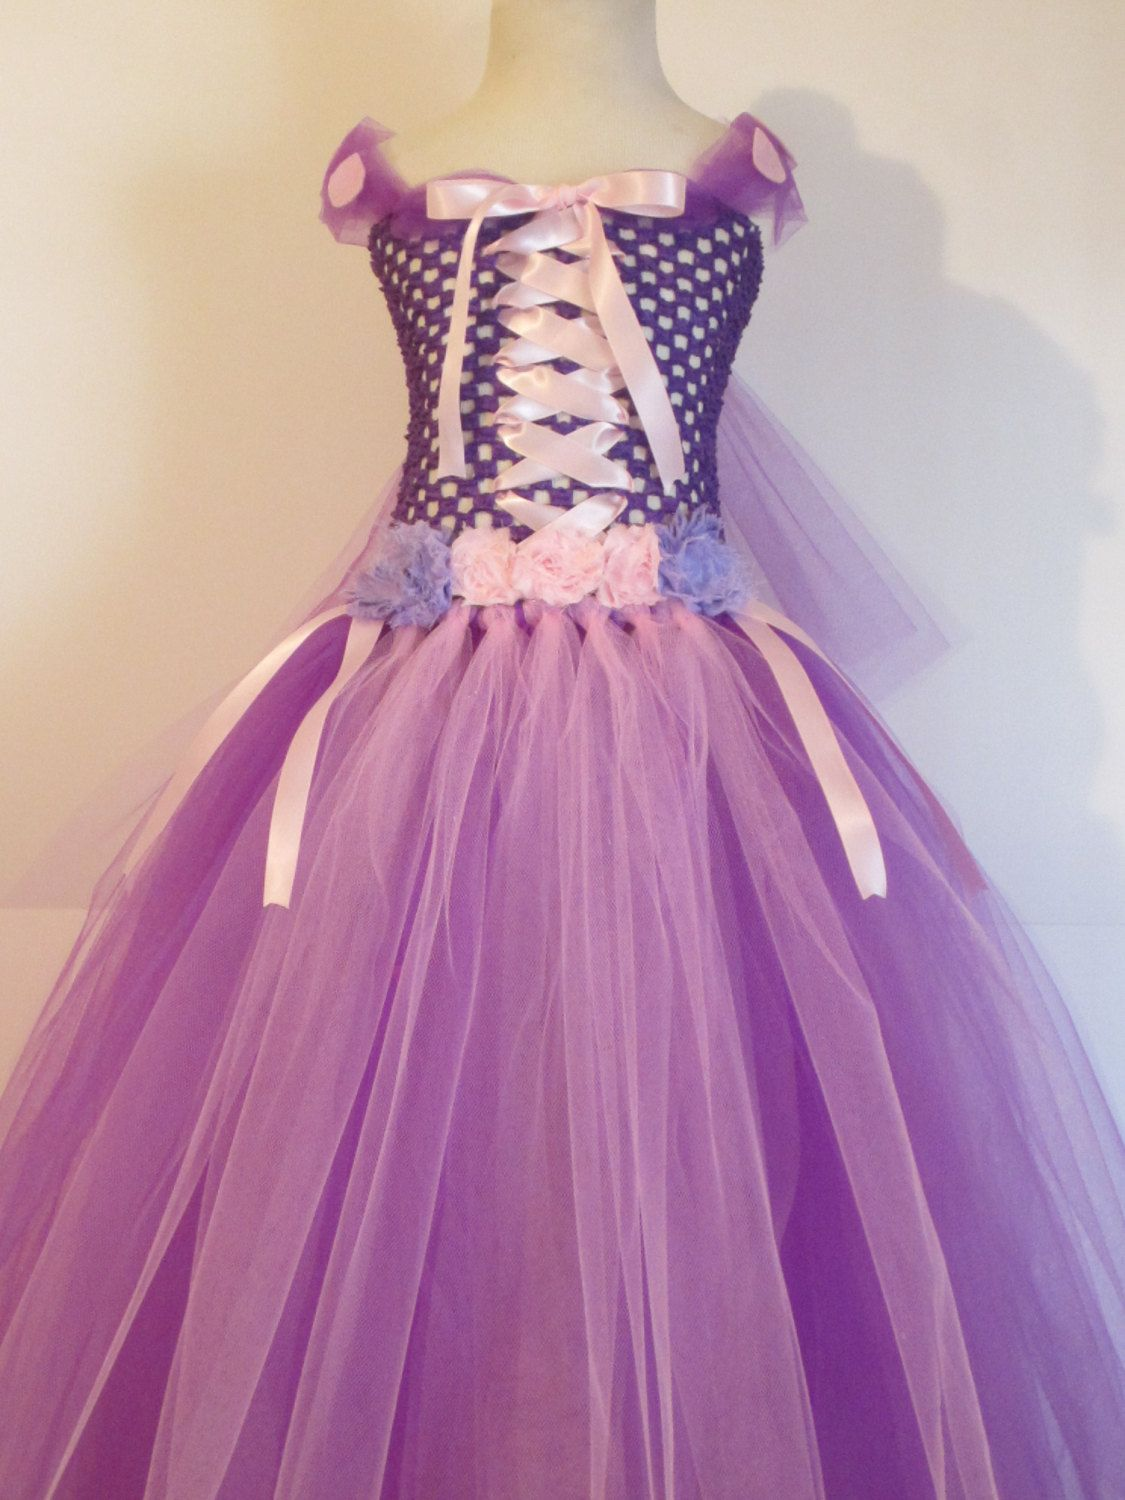 Tutu Dress Rapunzel Costume Full Length Baby by AmericanBlossoms ...